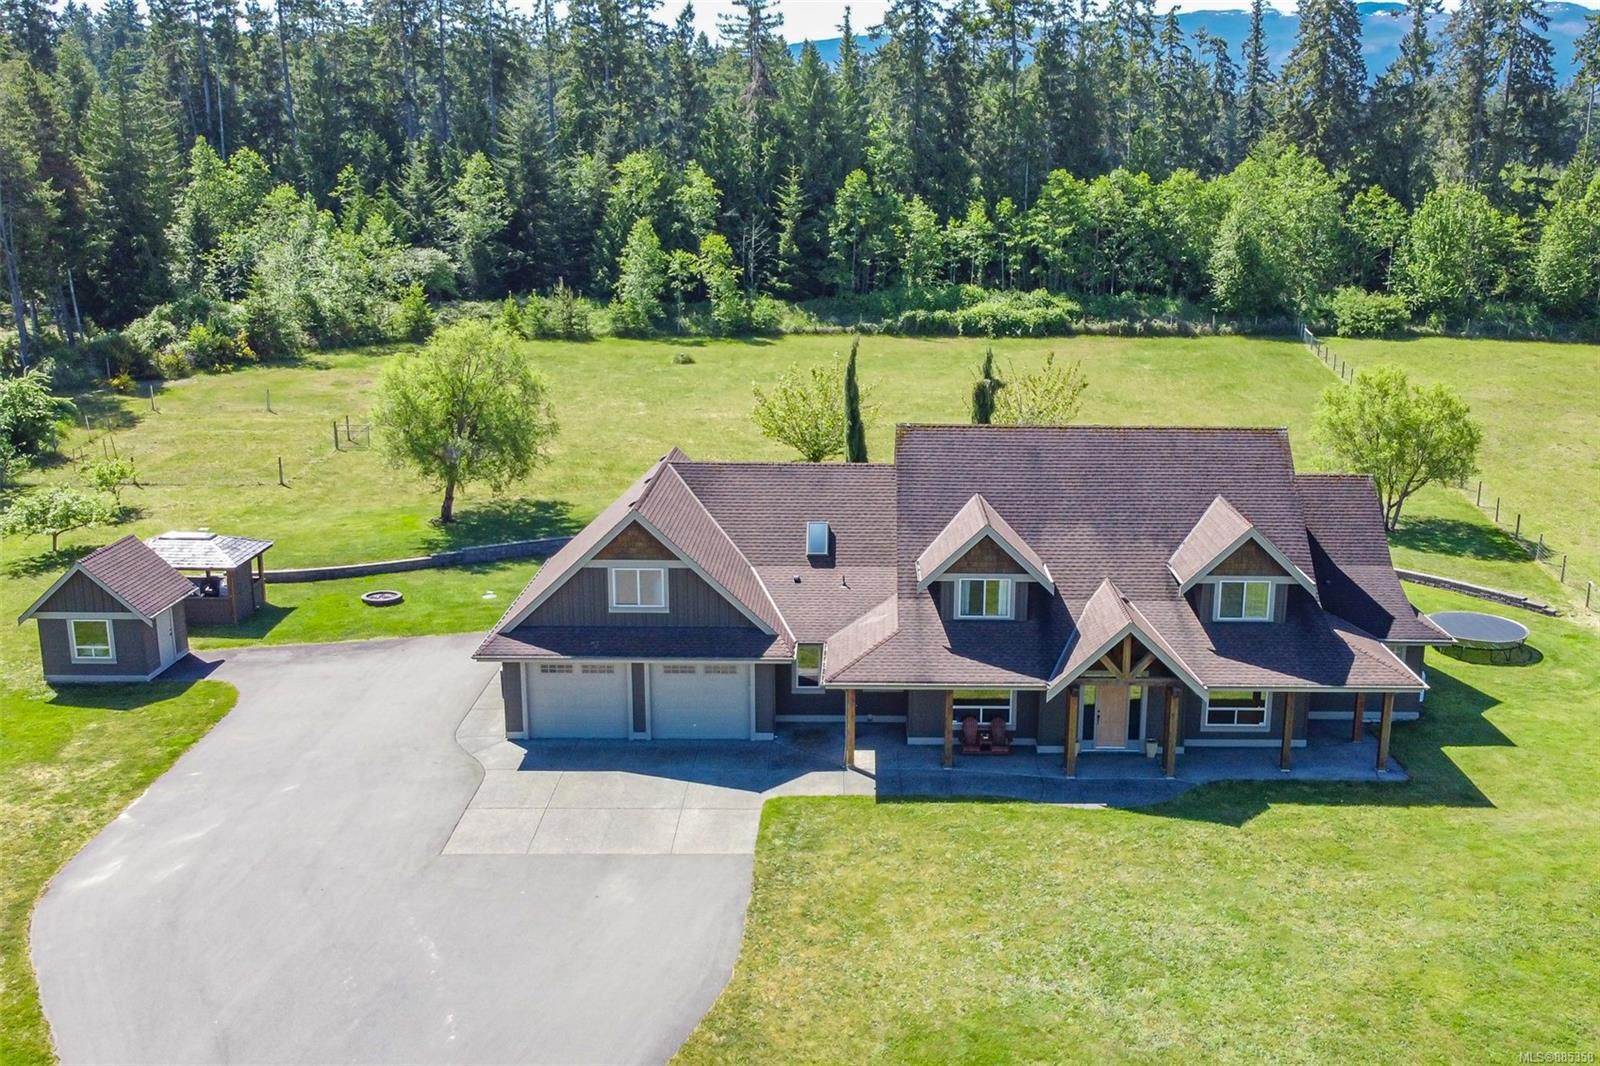 Photo 63: Photos: 2850 Peters Rd in : PQ Qualicum Beach House for sale (Parksville/Qualicum)  : MLS®# 885358